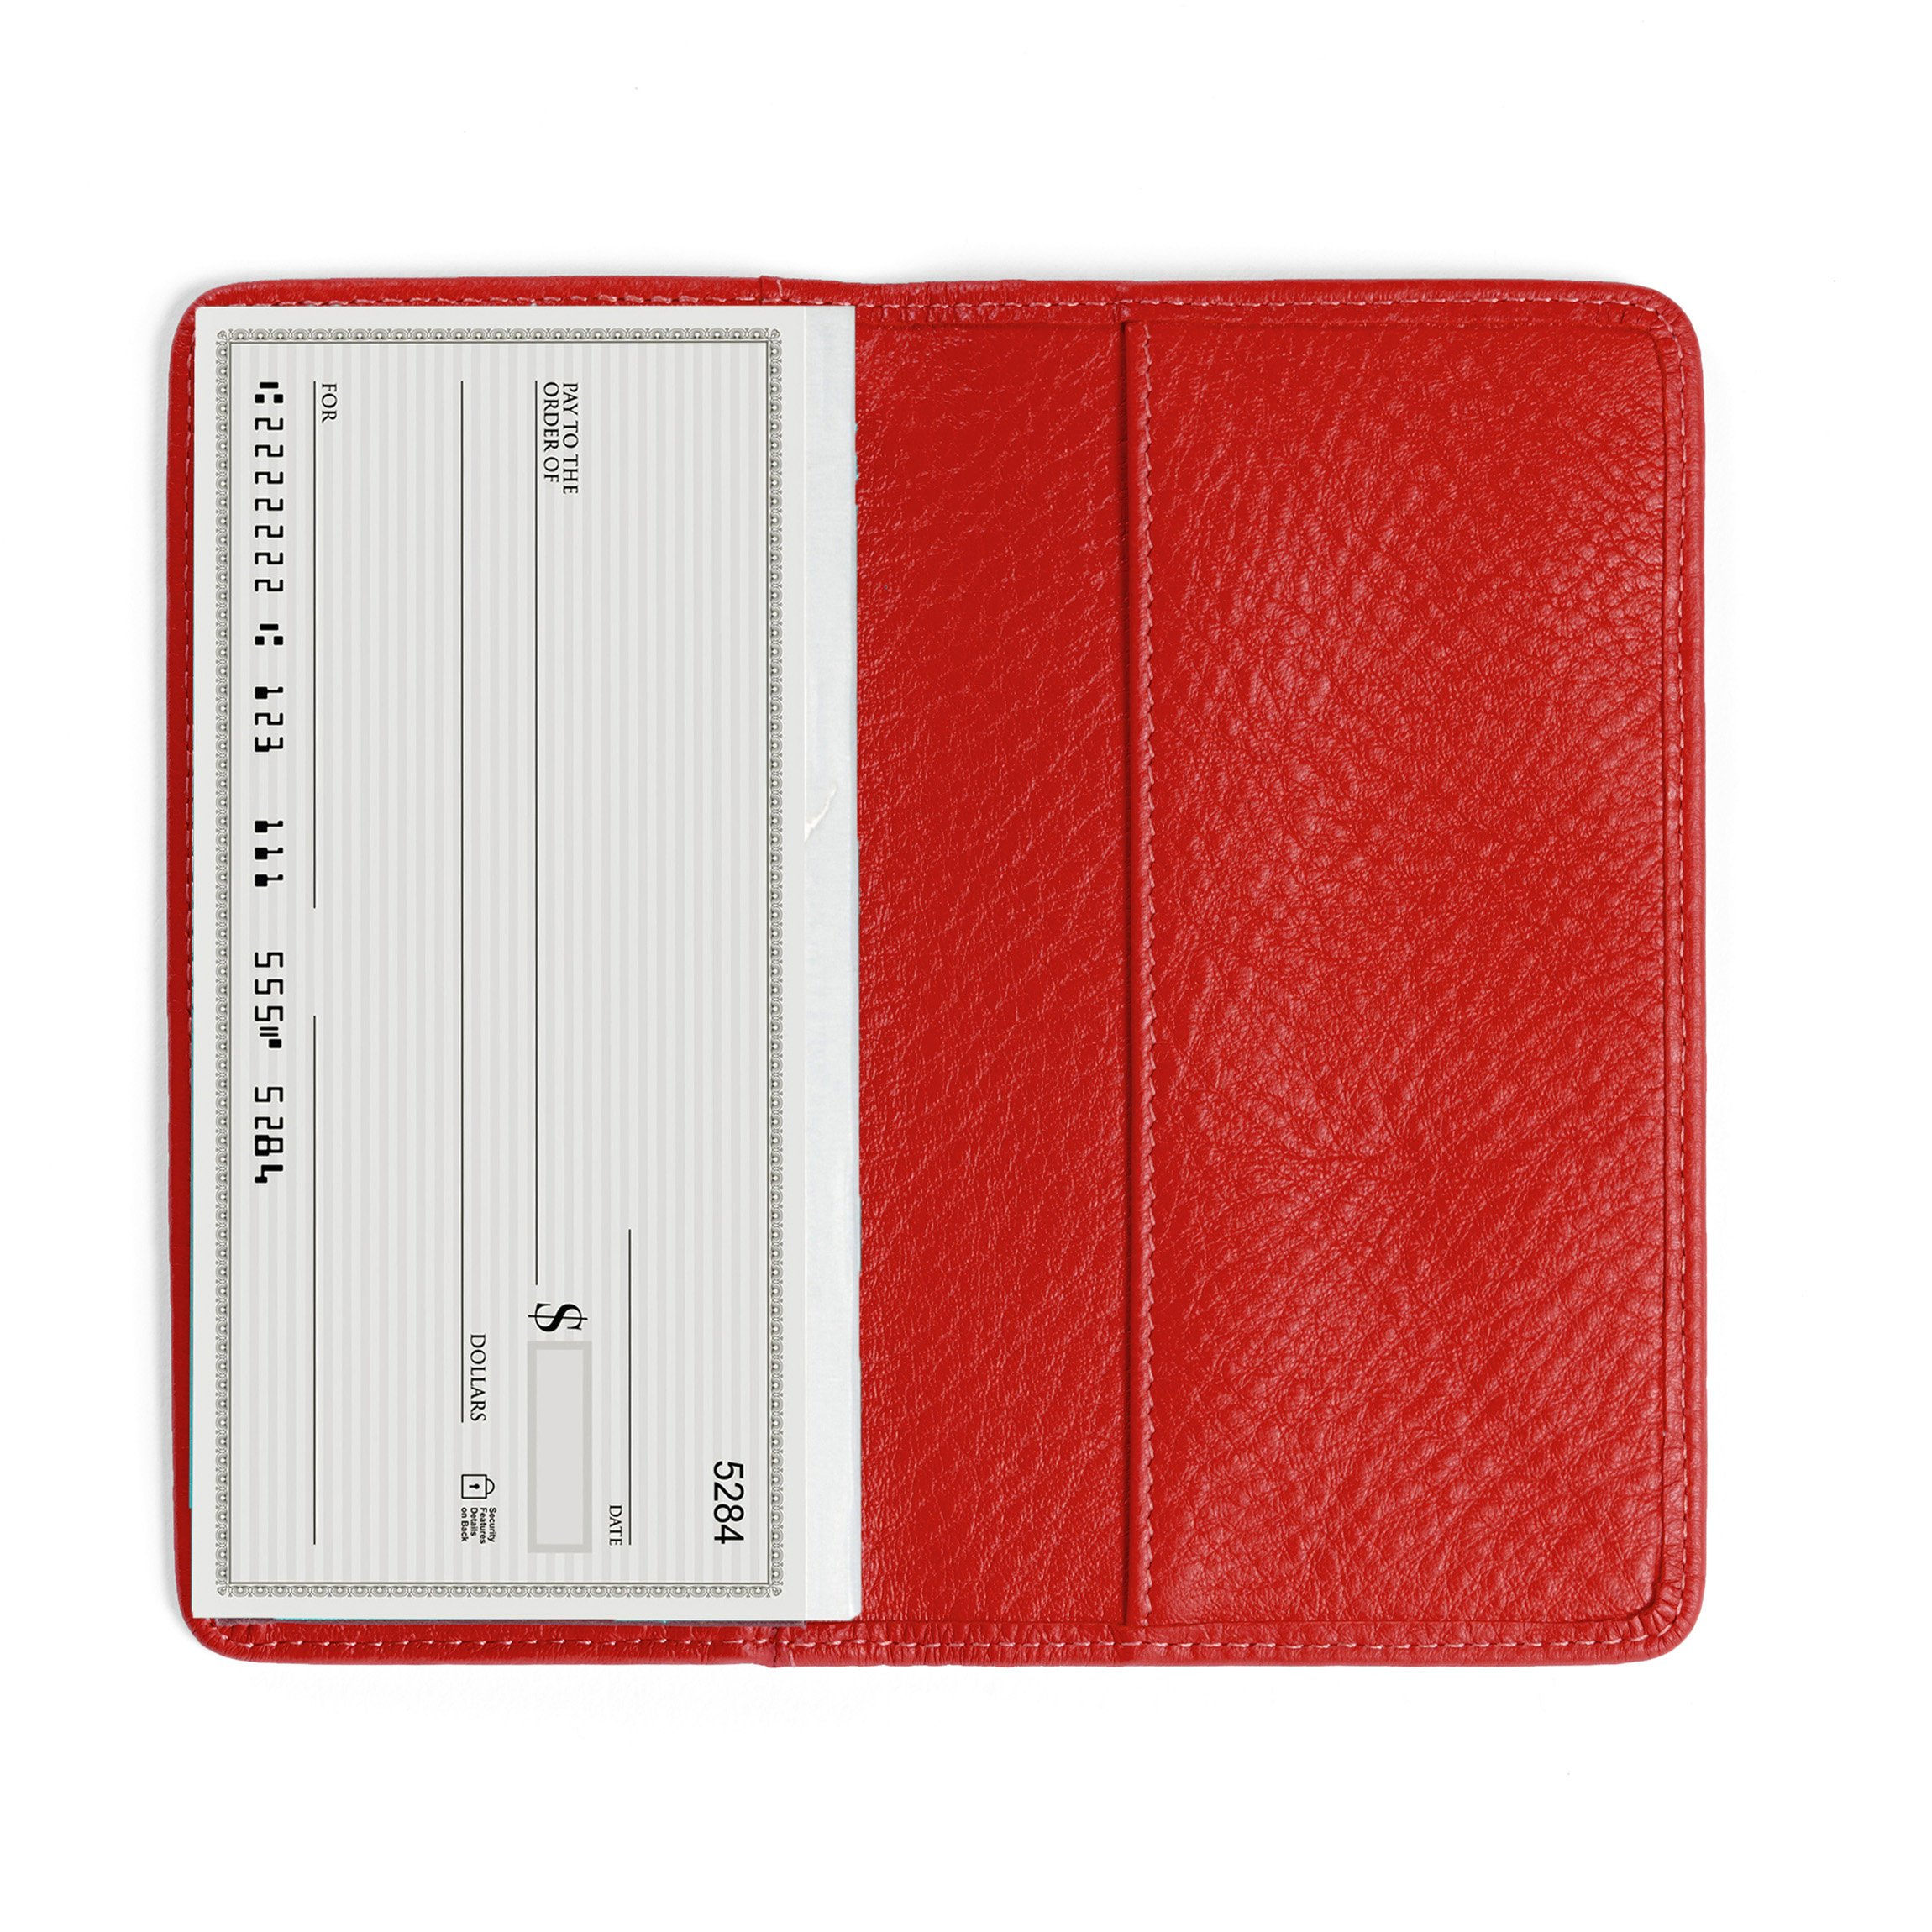 Leatherology Standard Checkbook Cover - Full Grain Leather Leather - Scarlet (red)